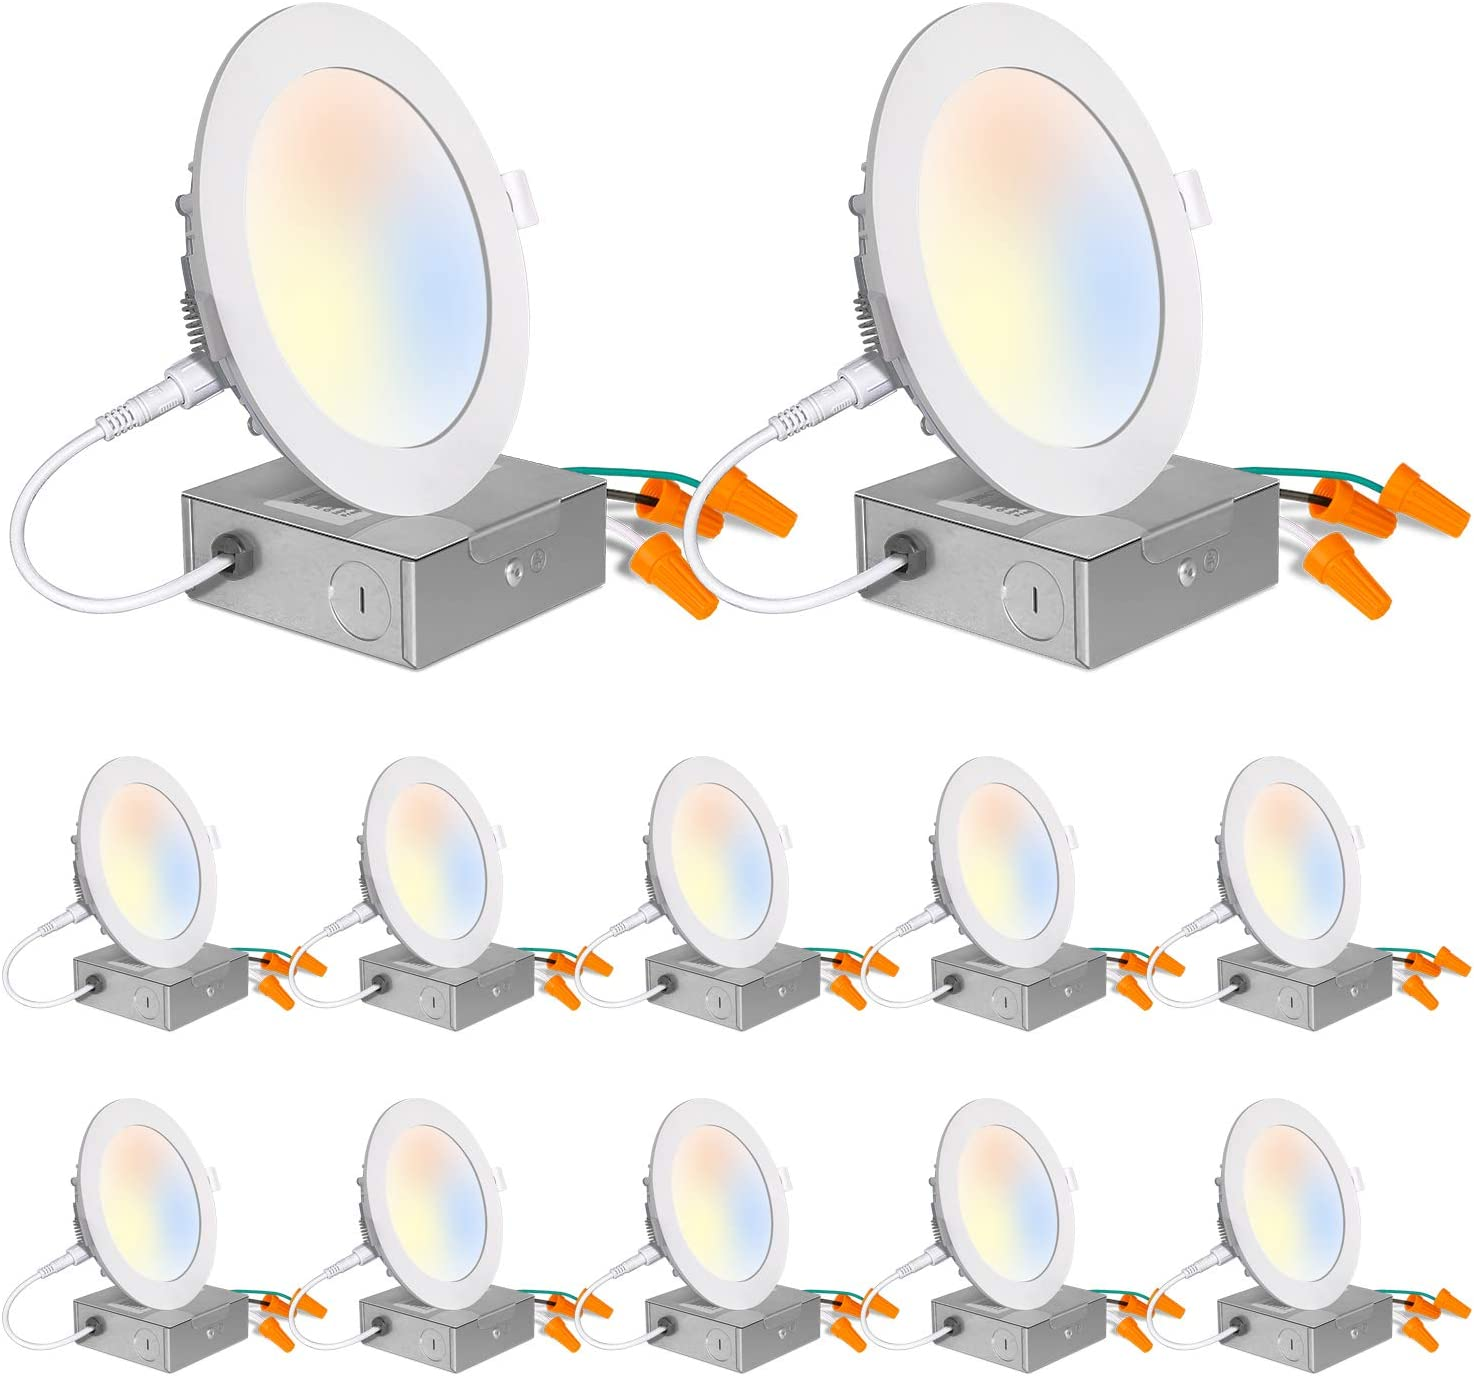 8 Inch Long x 5-1//4 Inch Wide x 5-1//2 Inch High 9 Pack 120 Volt Cooper Lighting Incandescent Downlight